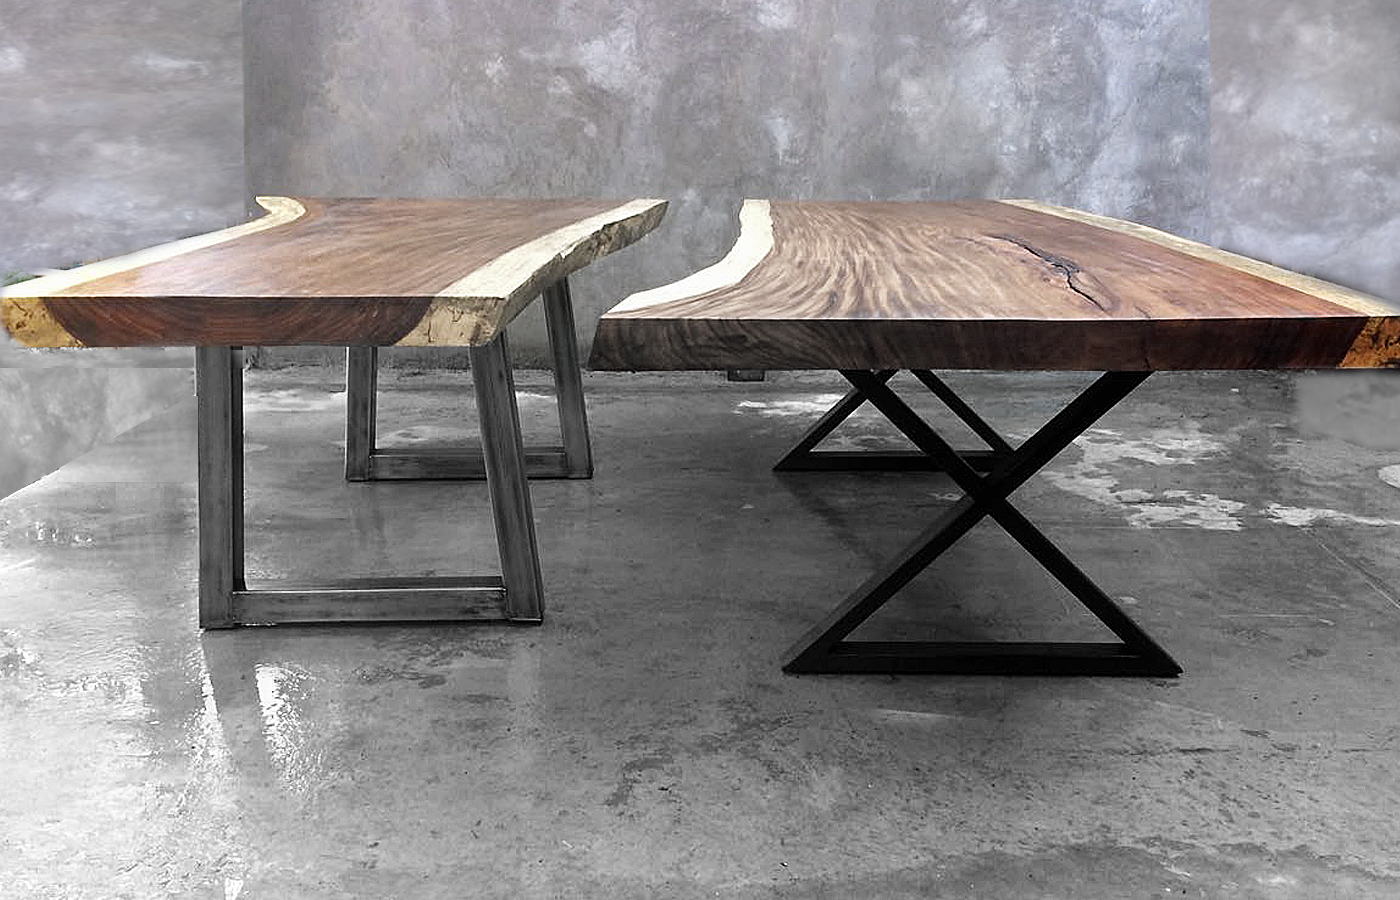 Unique wood table ideas for modern designs by parotas for Table leg design ideas